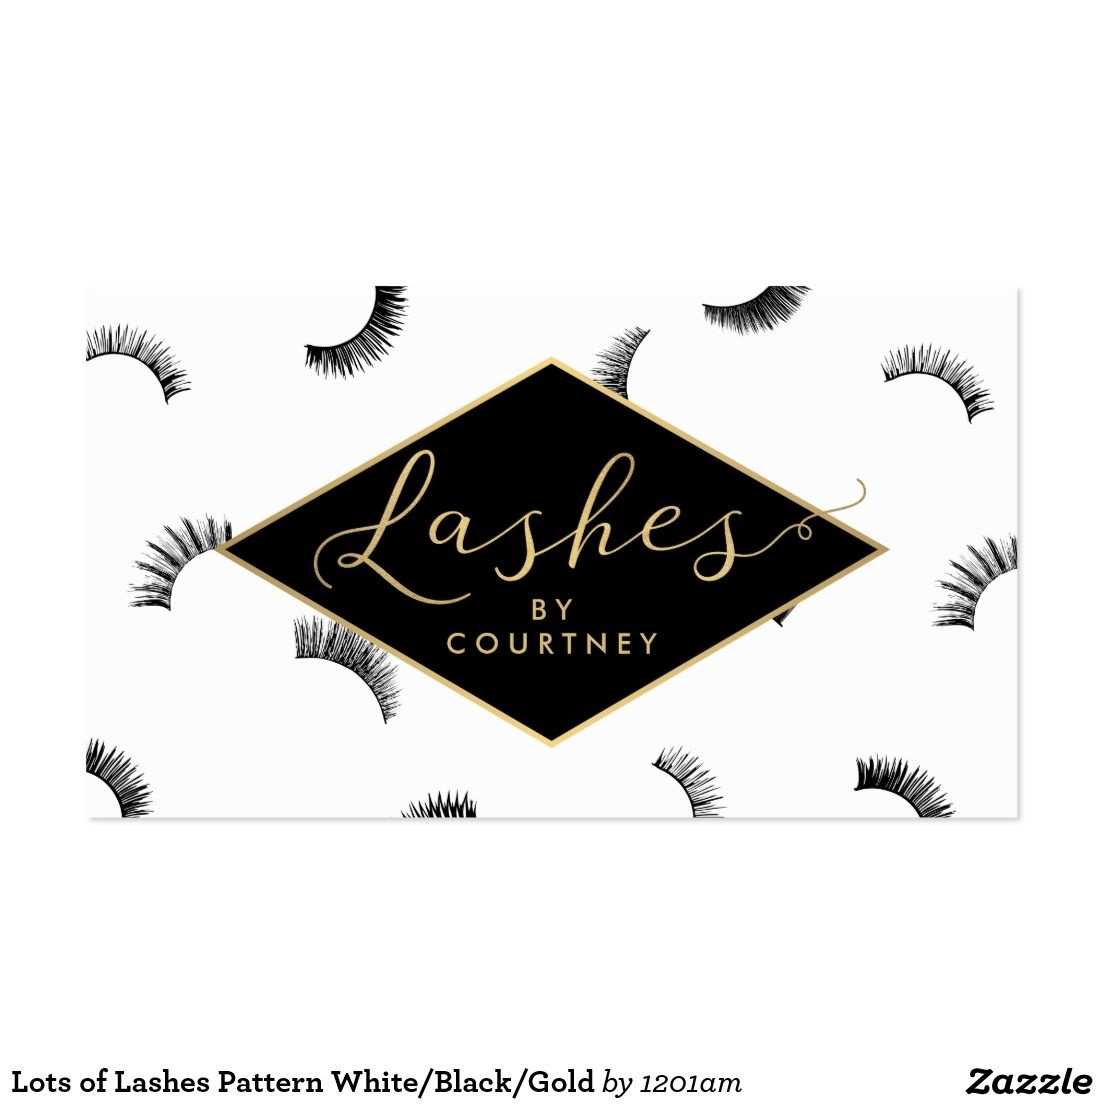 Lots of lashes pattern lash salon whiteblackgold business card lots of lashes pattern business card for lash salons double sided design instant magicingreecefo Image collections